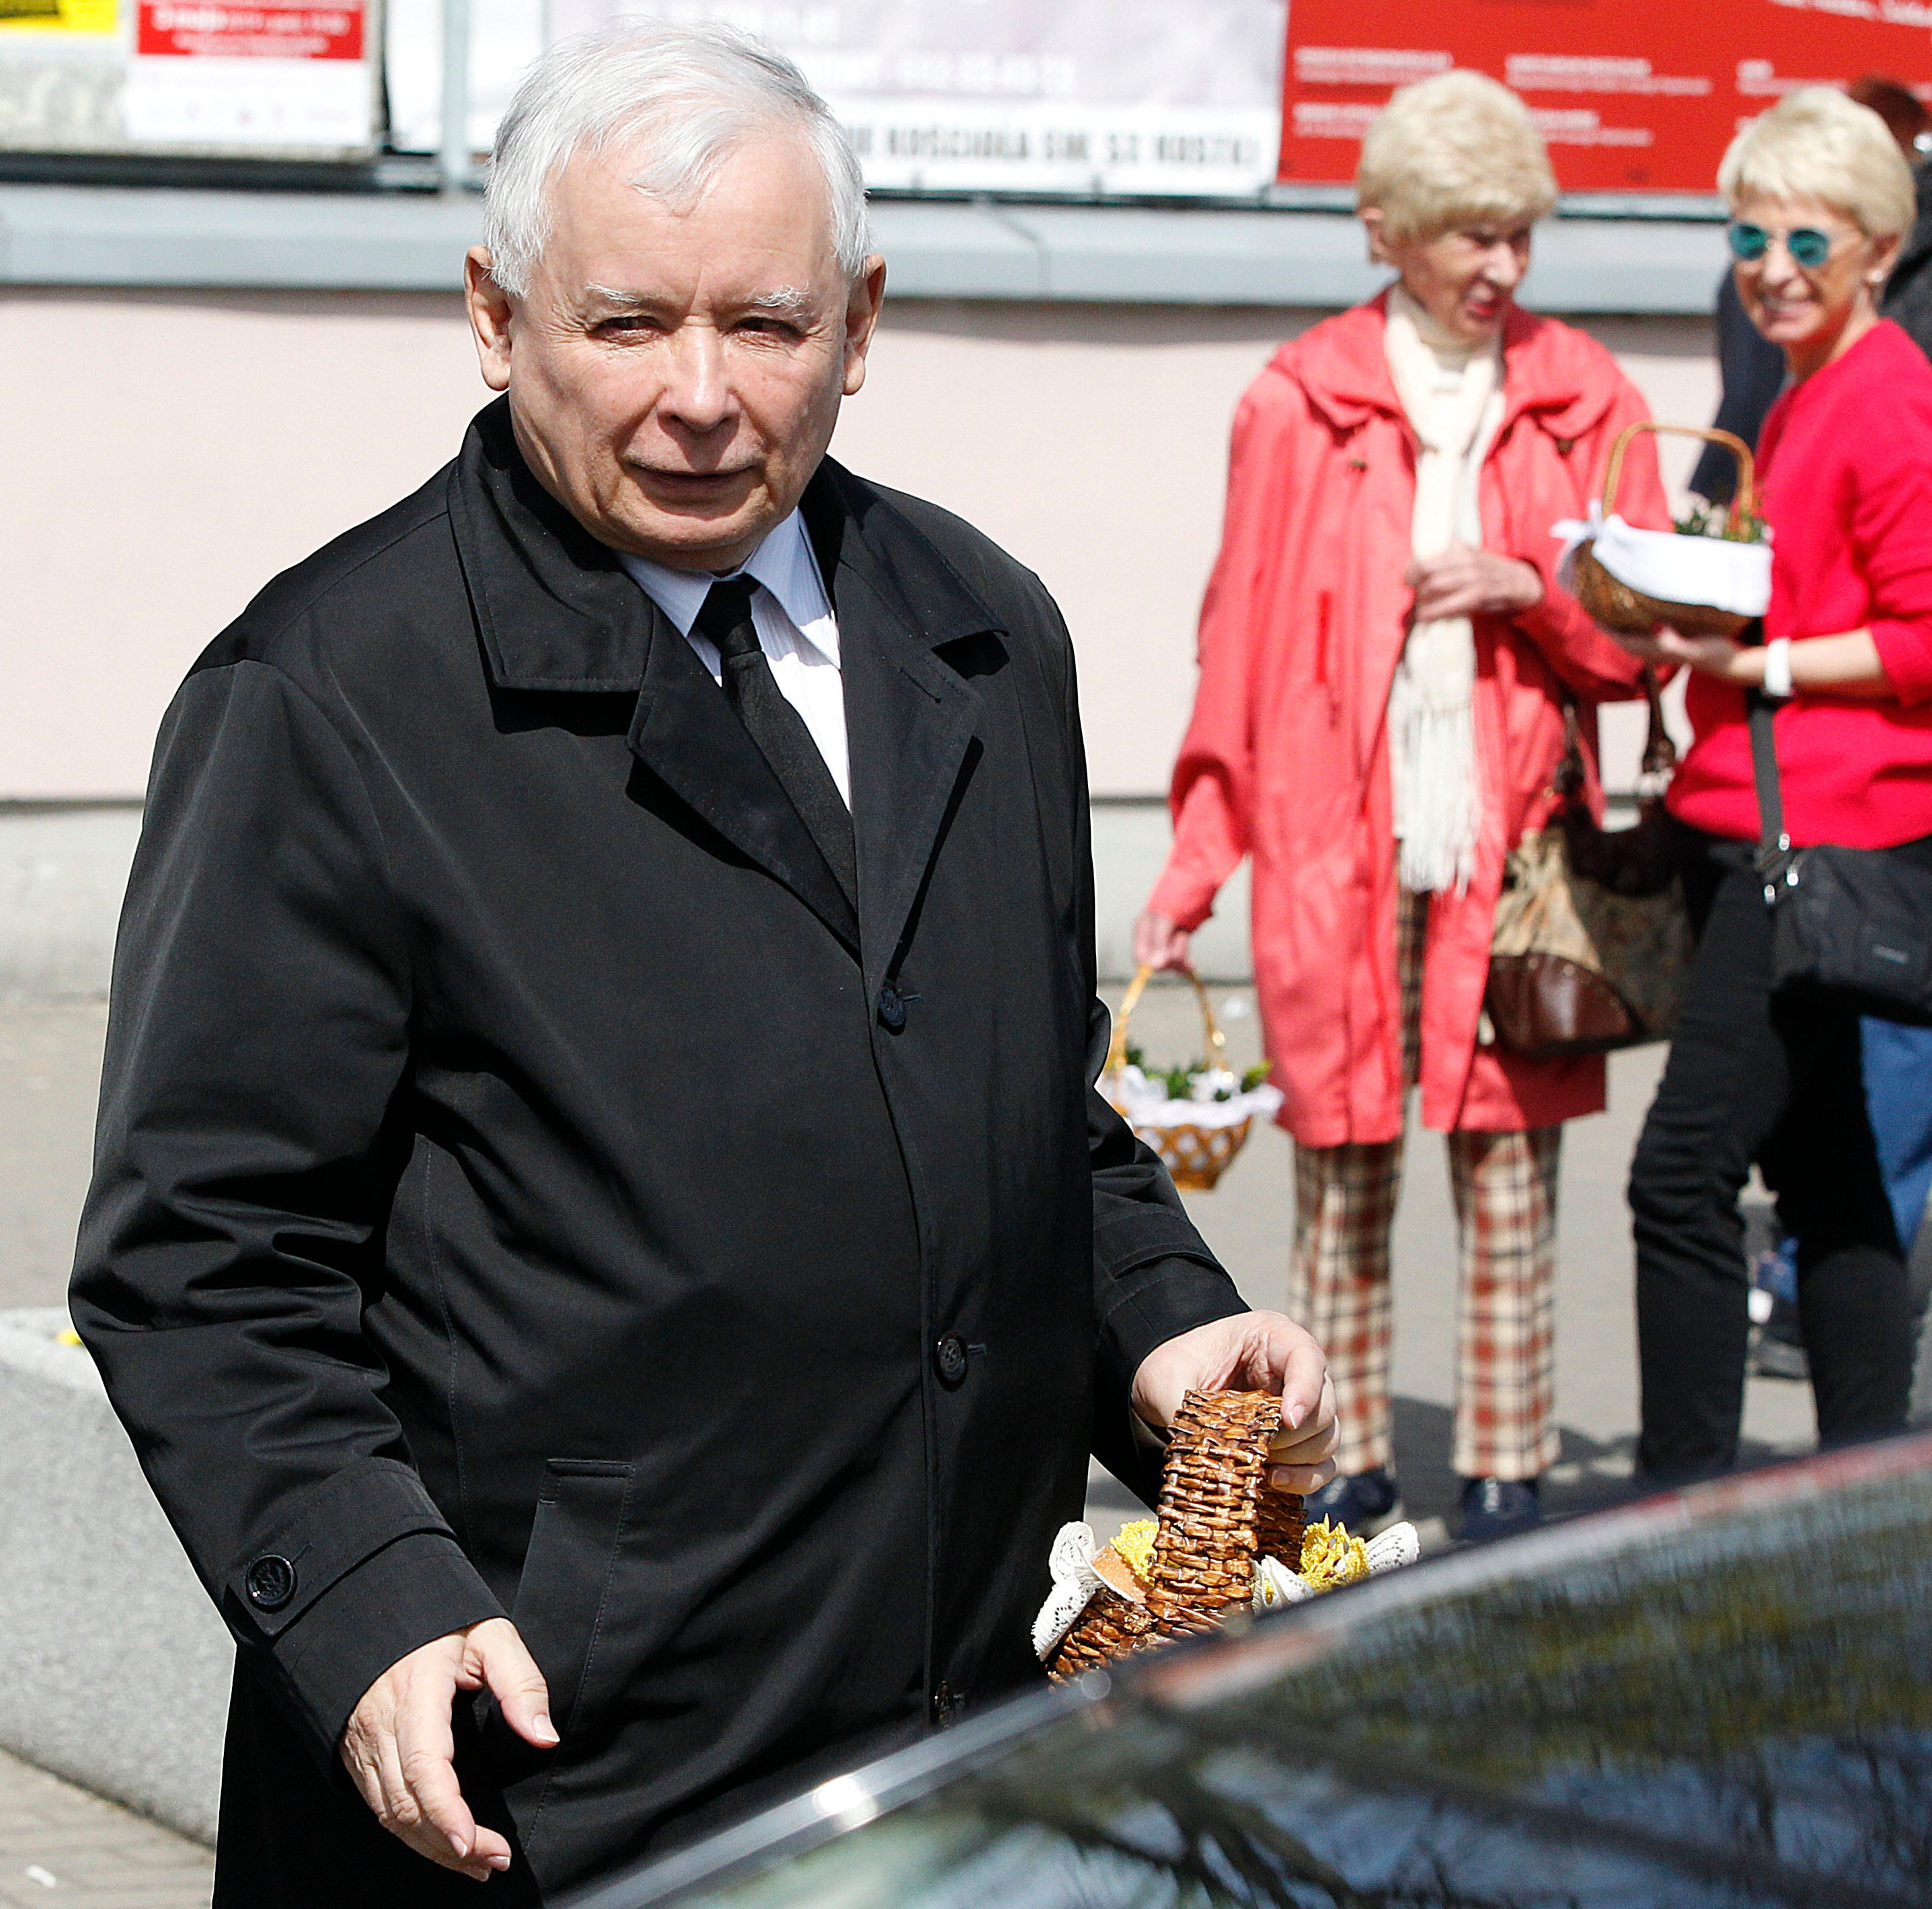 LGBT rights movement a threat to Poland, says conservative party chief Jaroslaw Kaczynski